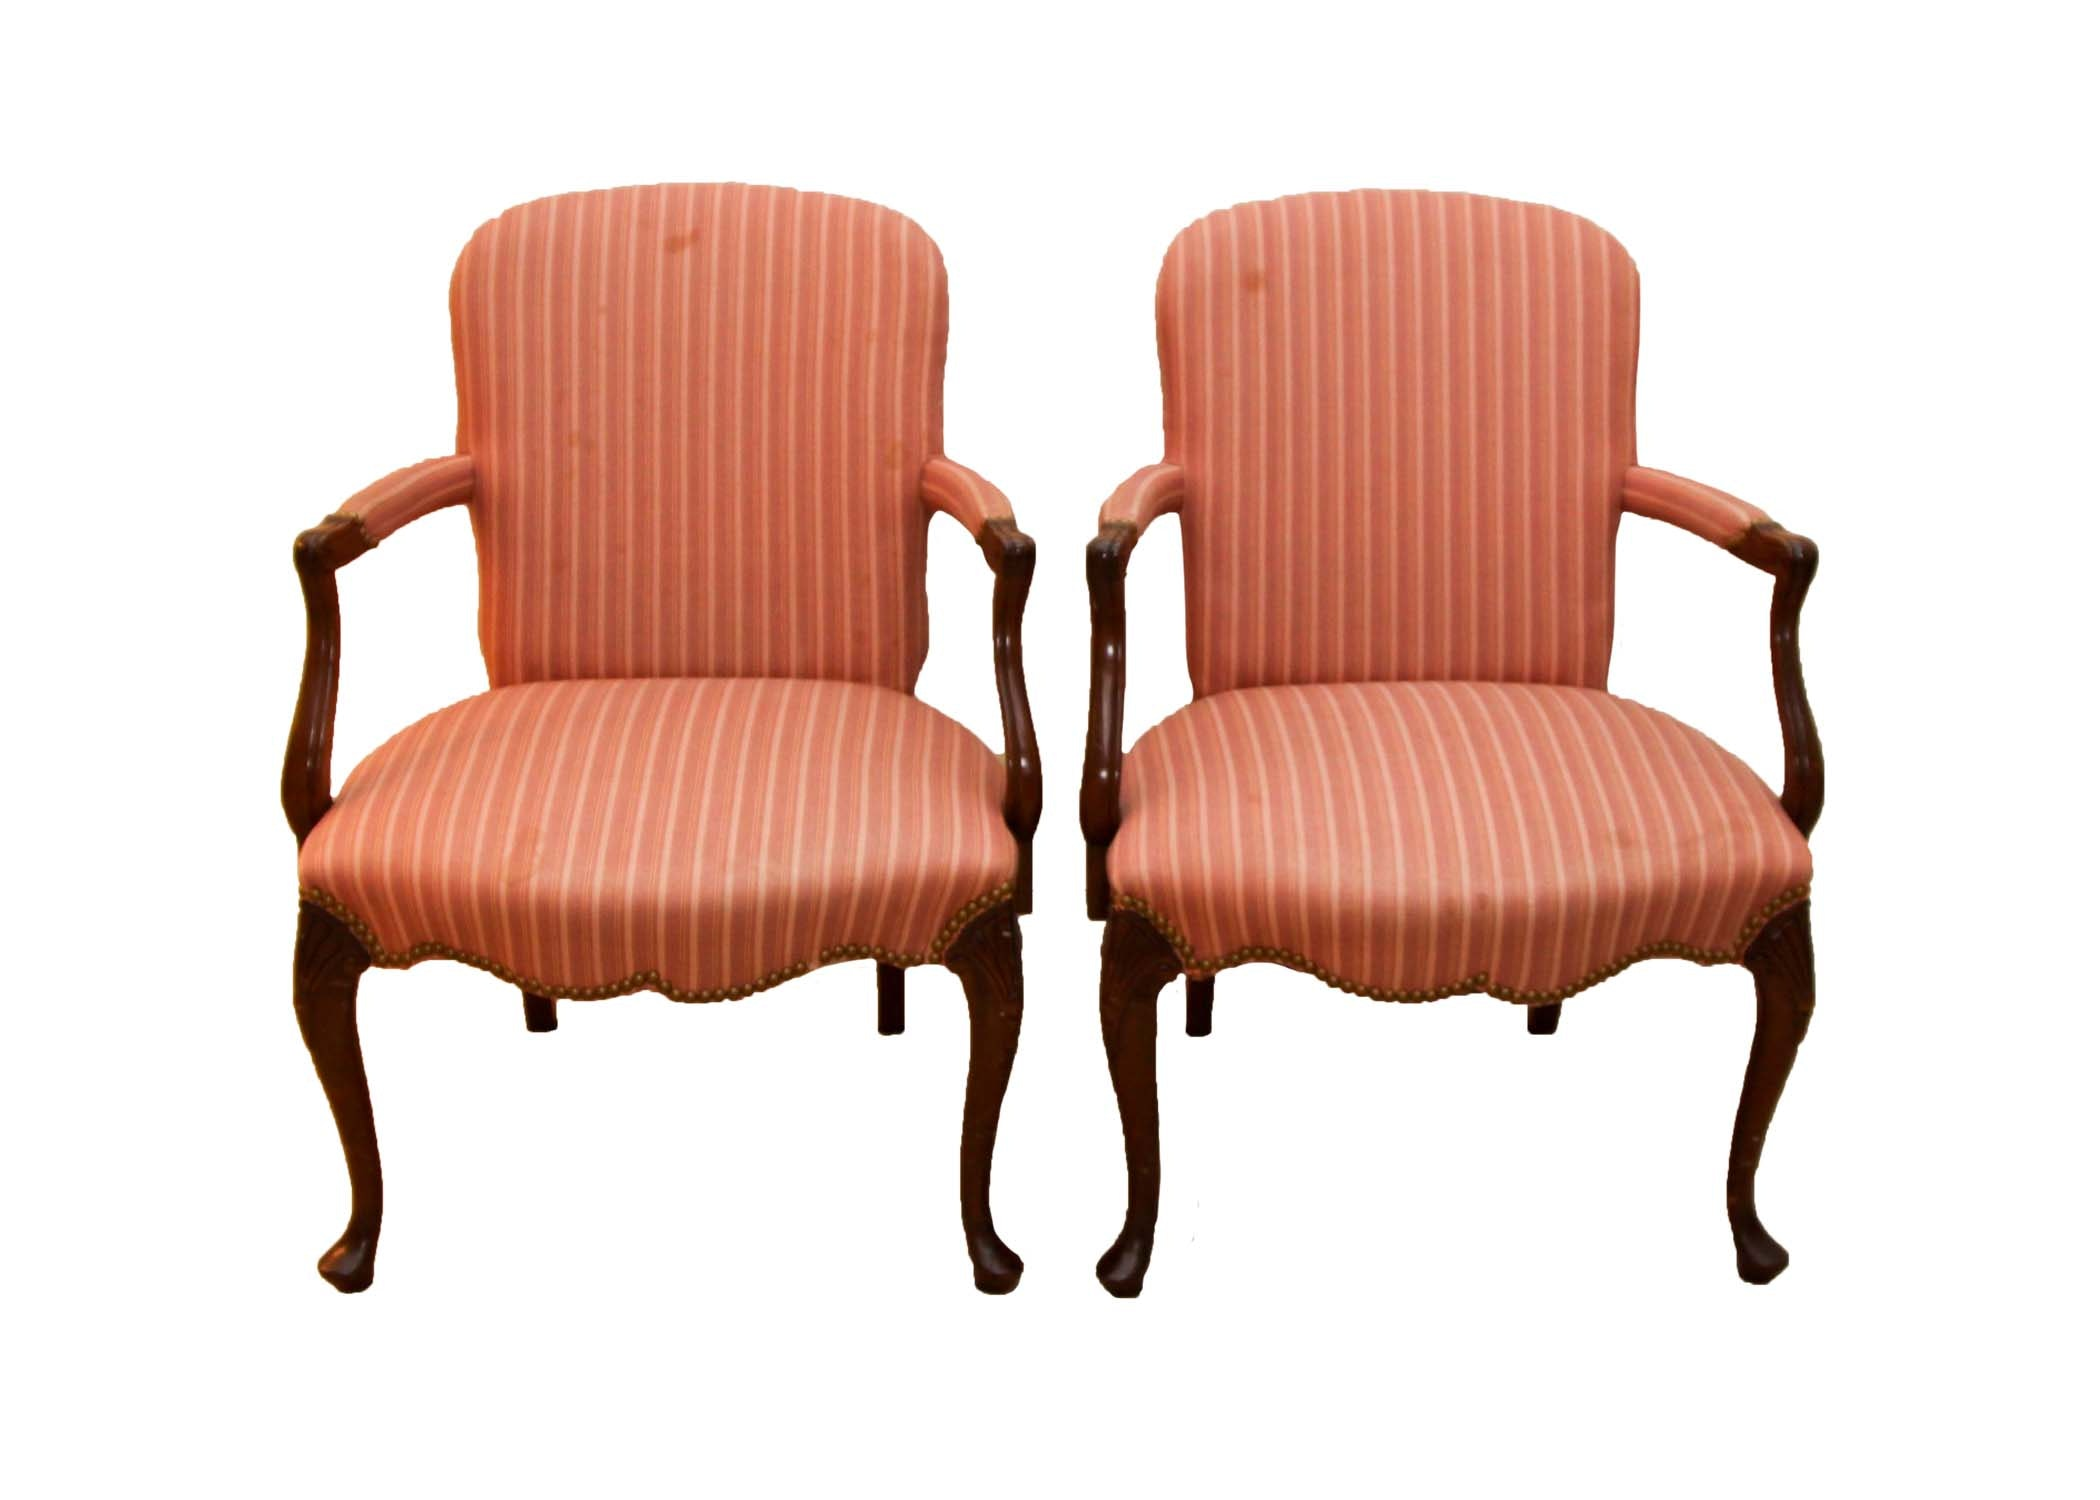 Pair of Hickory Chair Furniture Co. Pink Striped Chairs